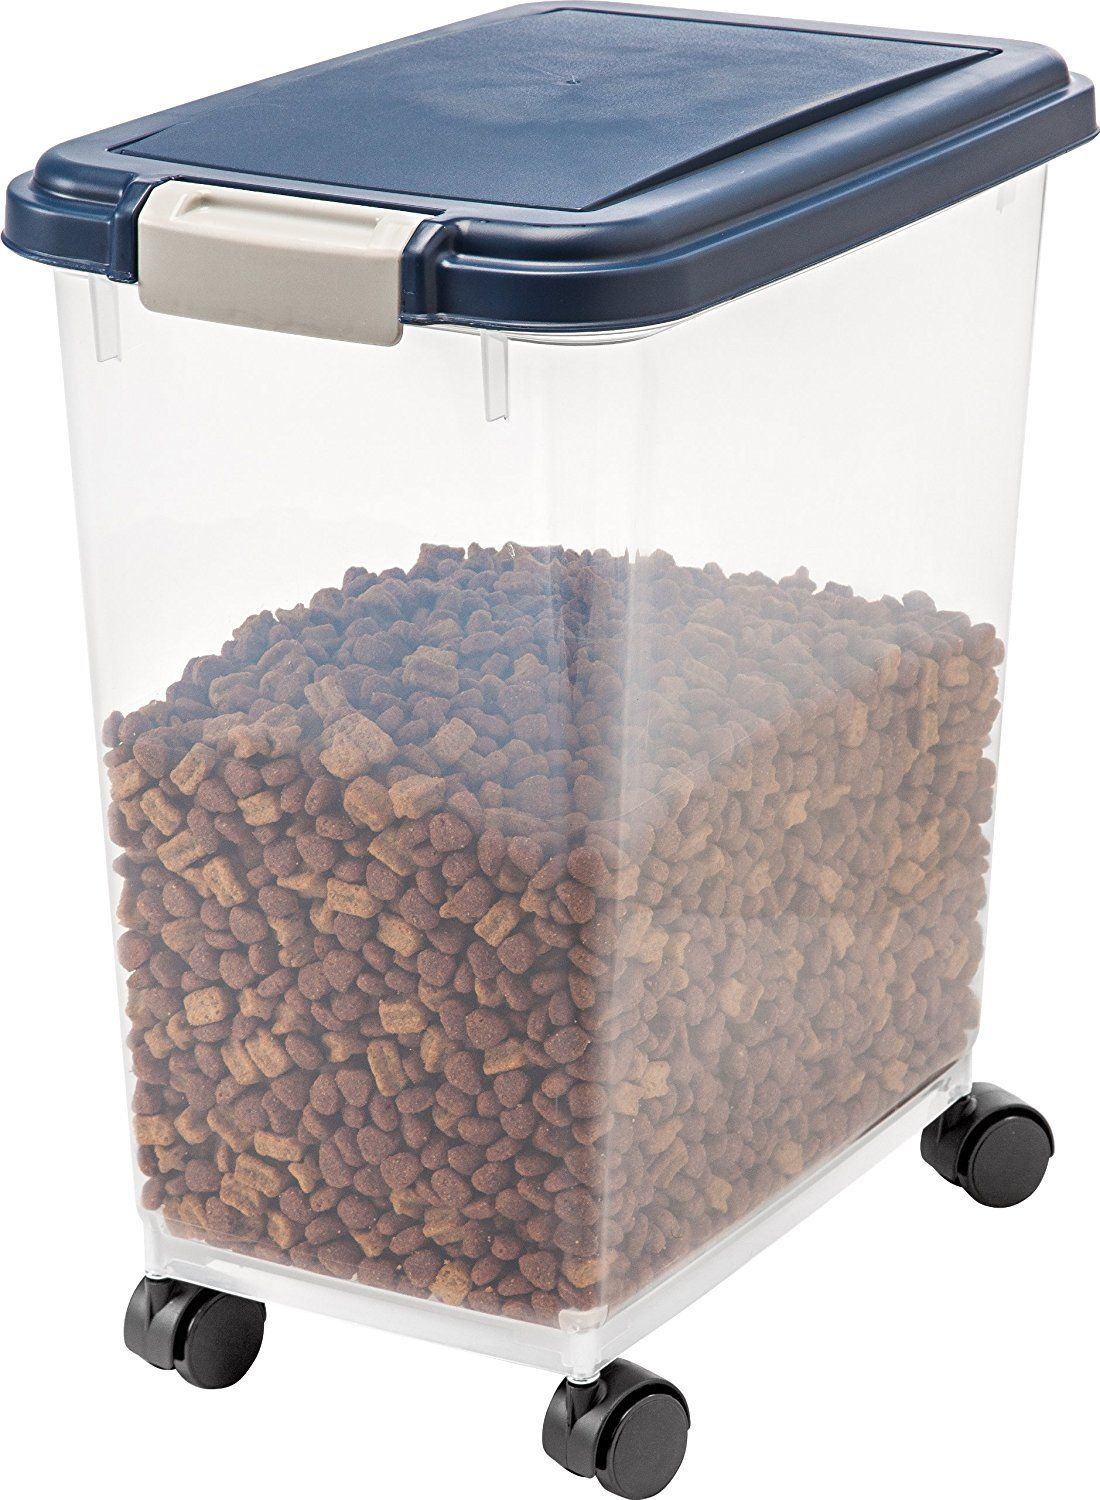 1094 17 Value IRIS Airtight Pet Food Storage Container For a